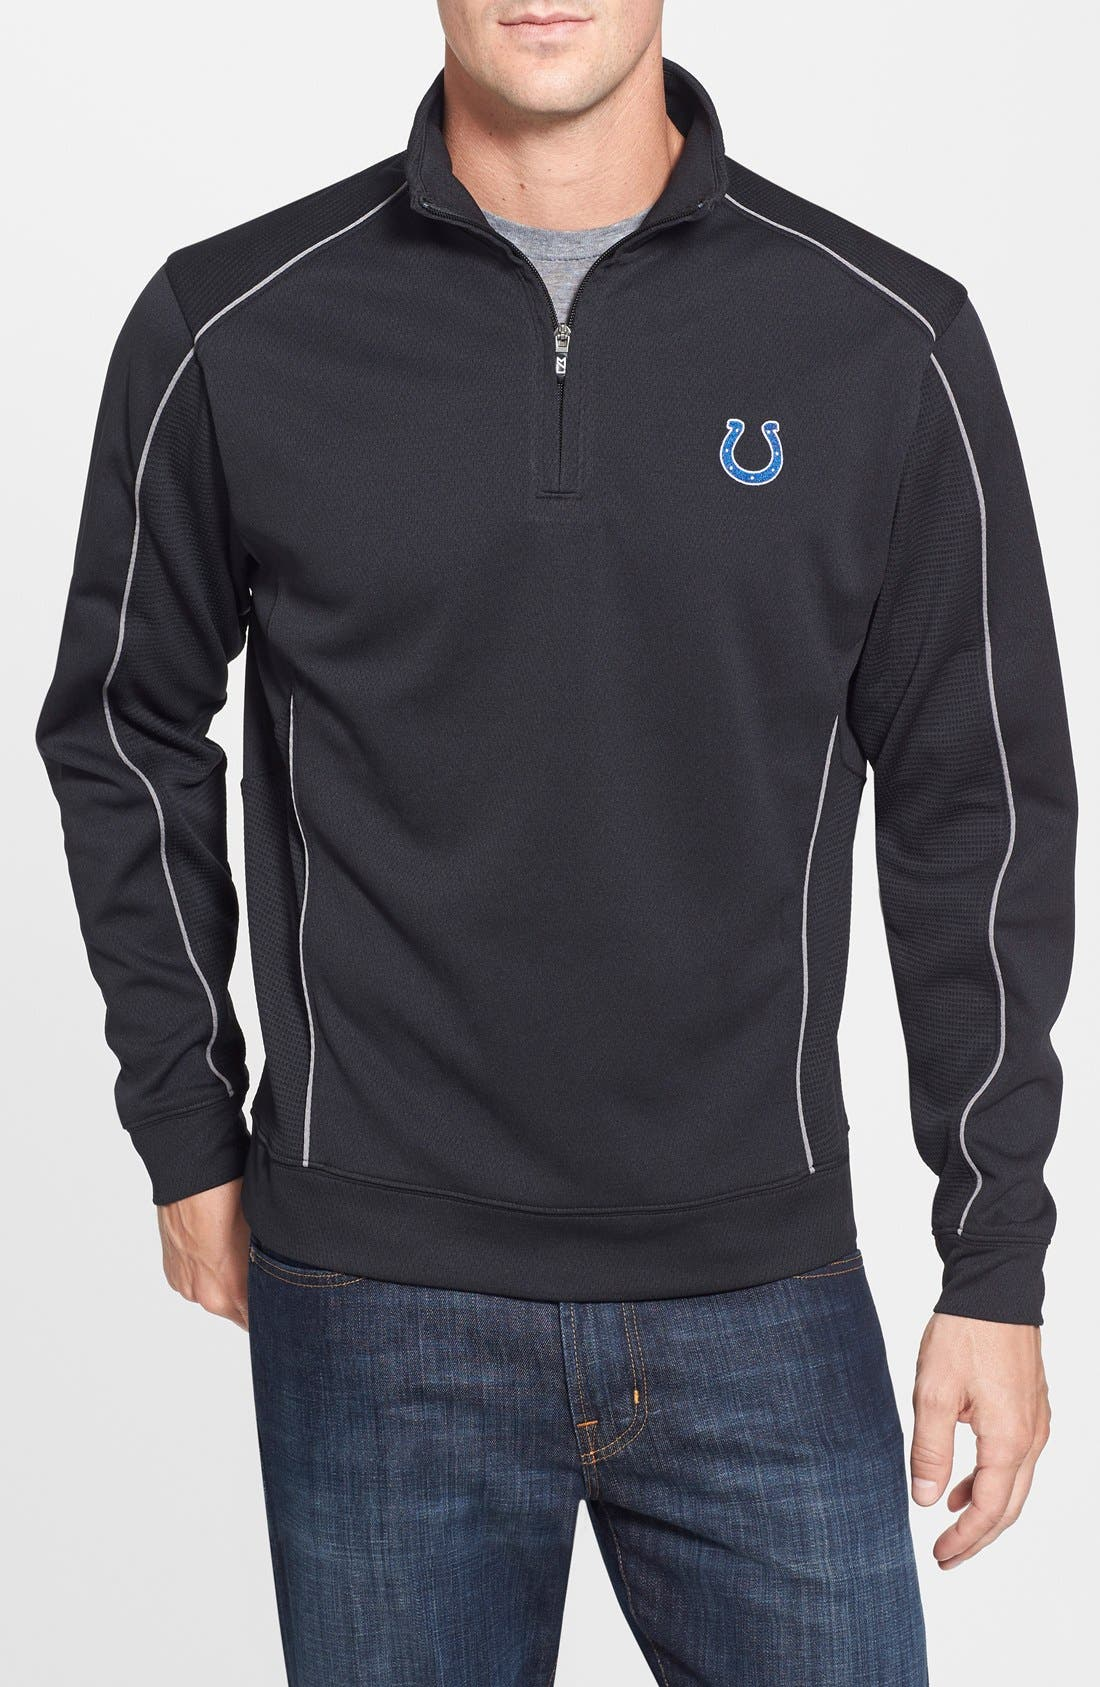 Indianapolis Colts - Edge DryTec Moisture Wicking Half Zip Pullover,                         Main,                         color, Black